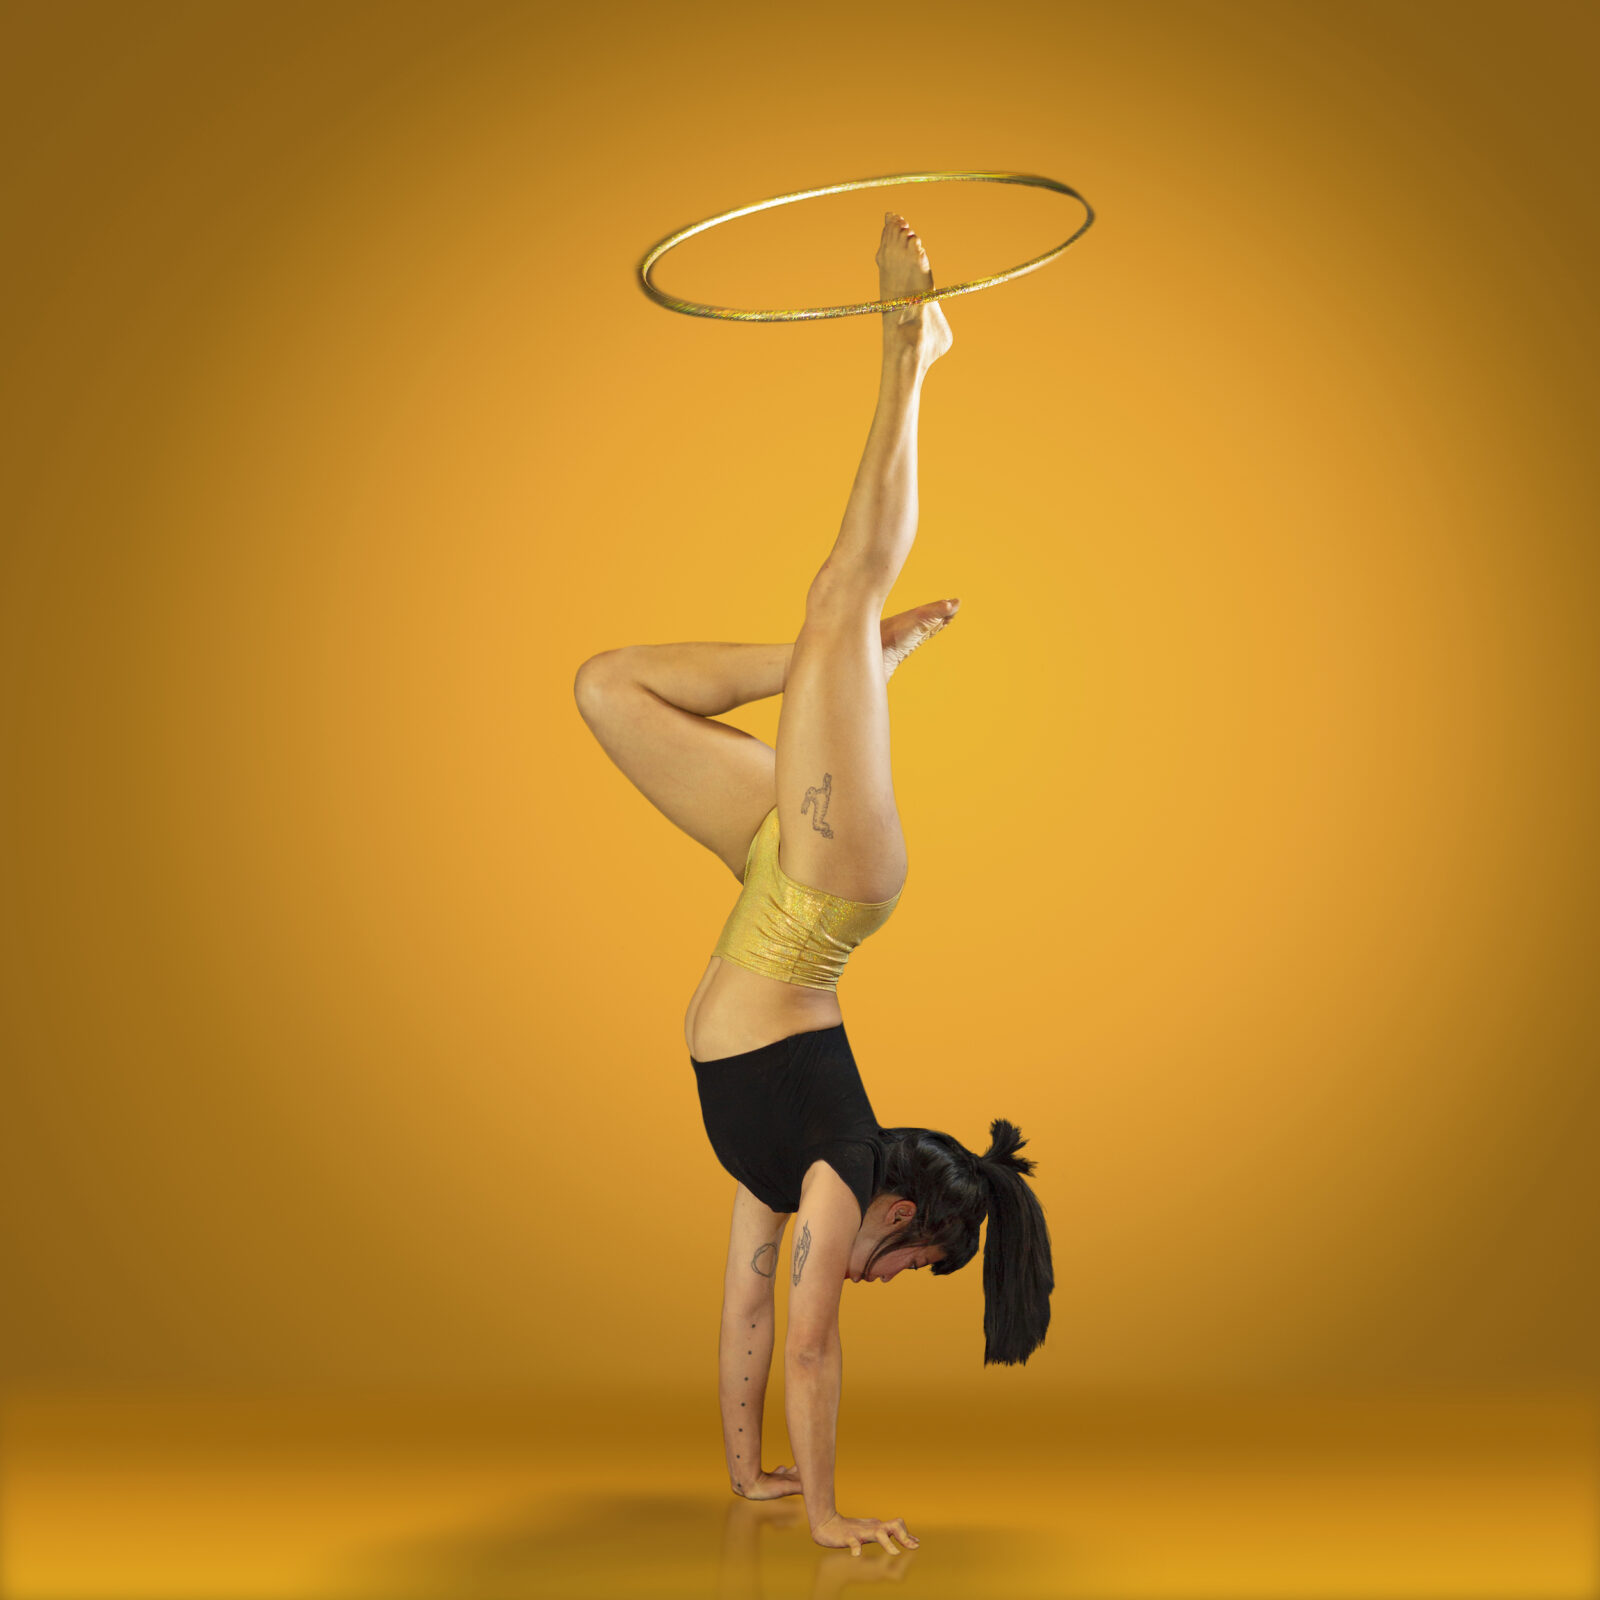 Renee doing a handstand while spinning a hula hoop on her foot